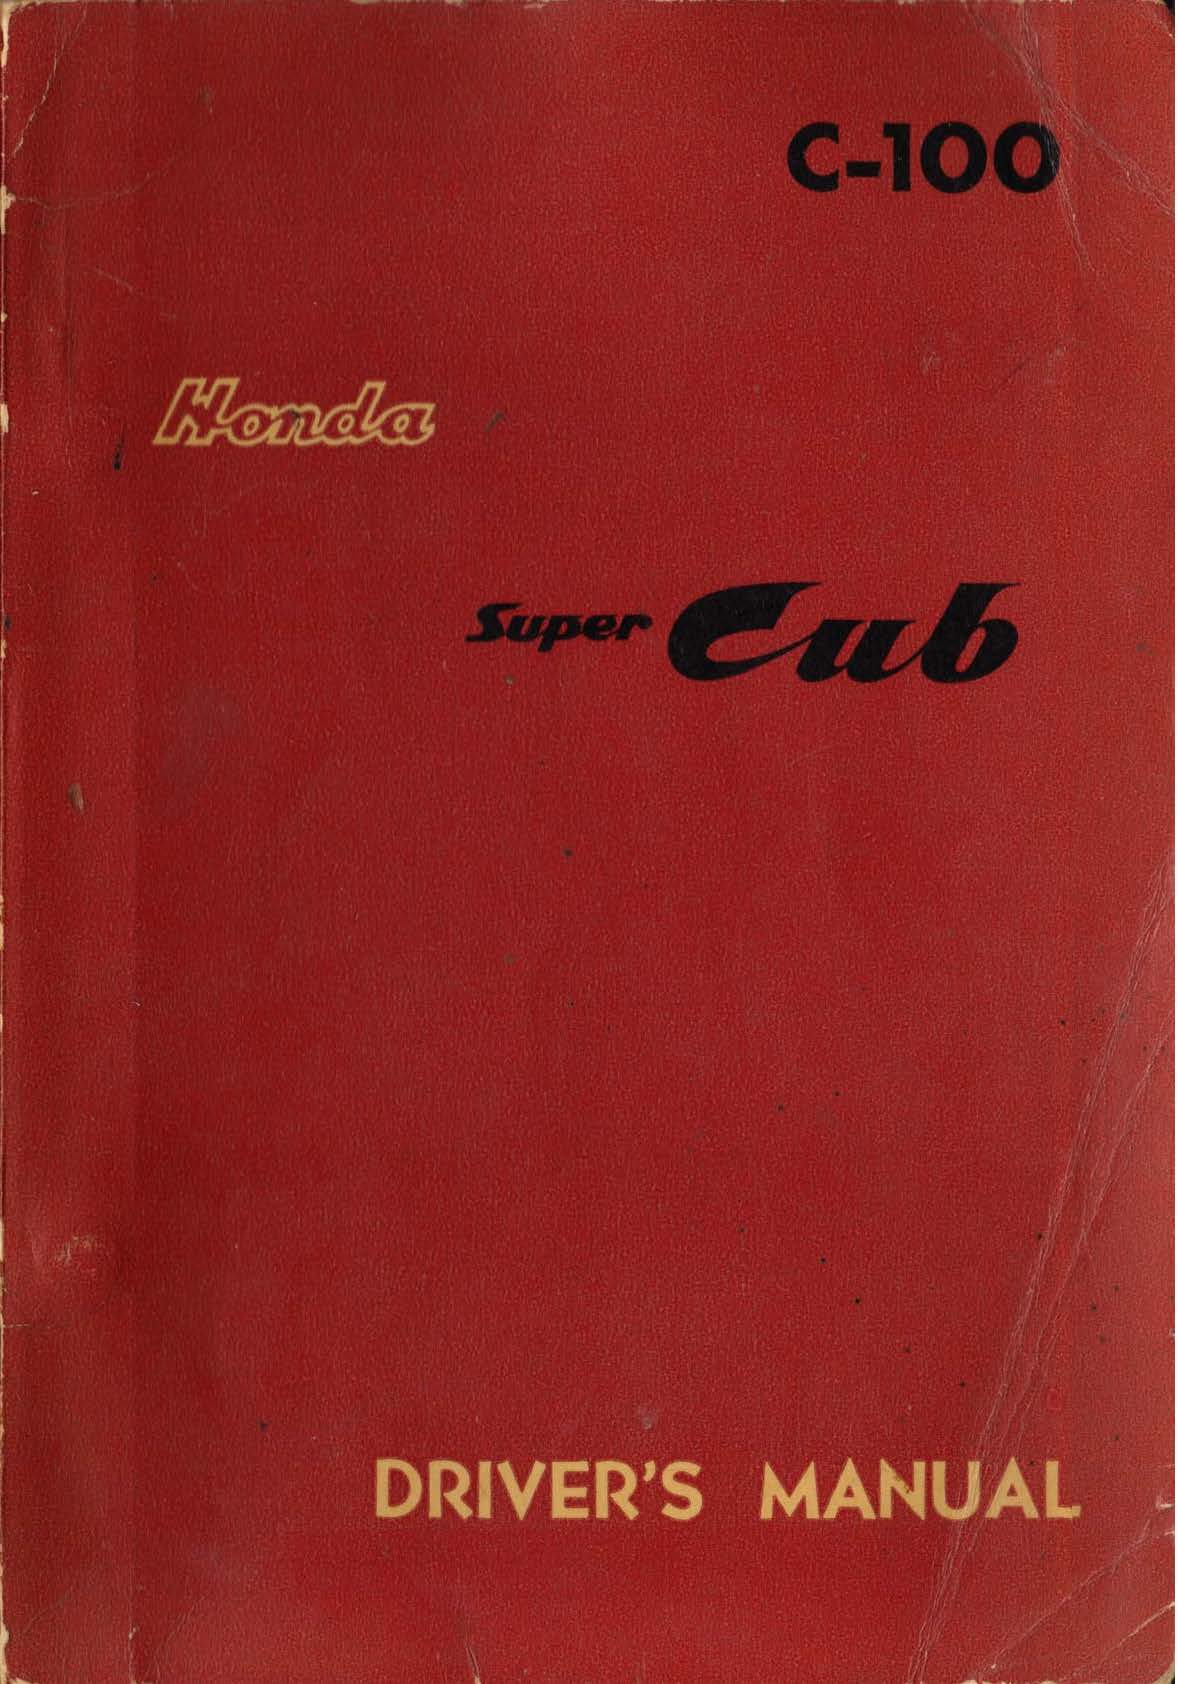 Honda C100 Owner's Manual / Partslist (1959)